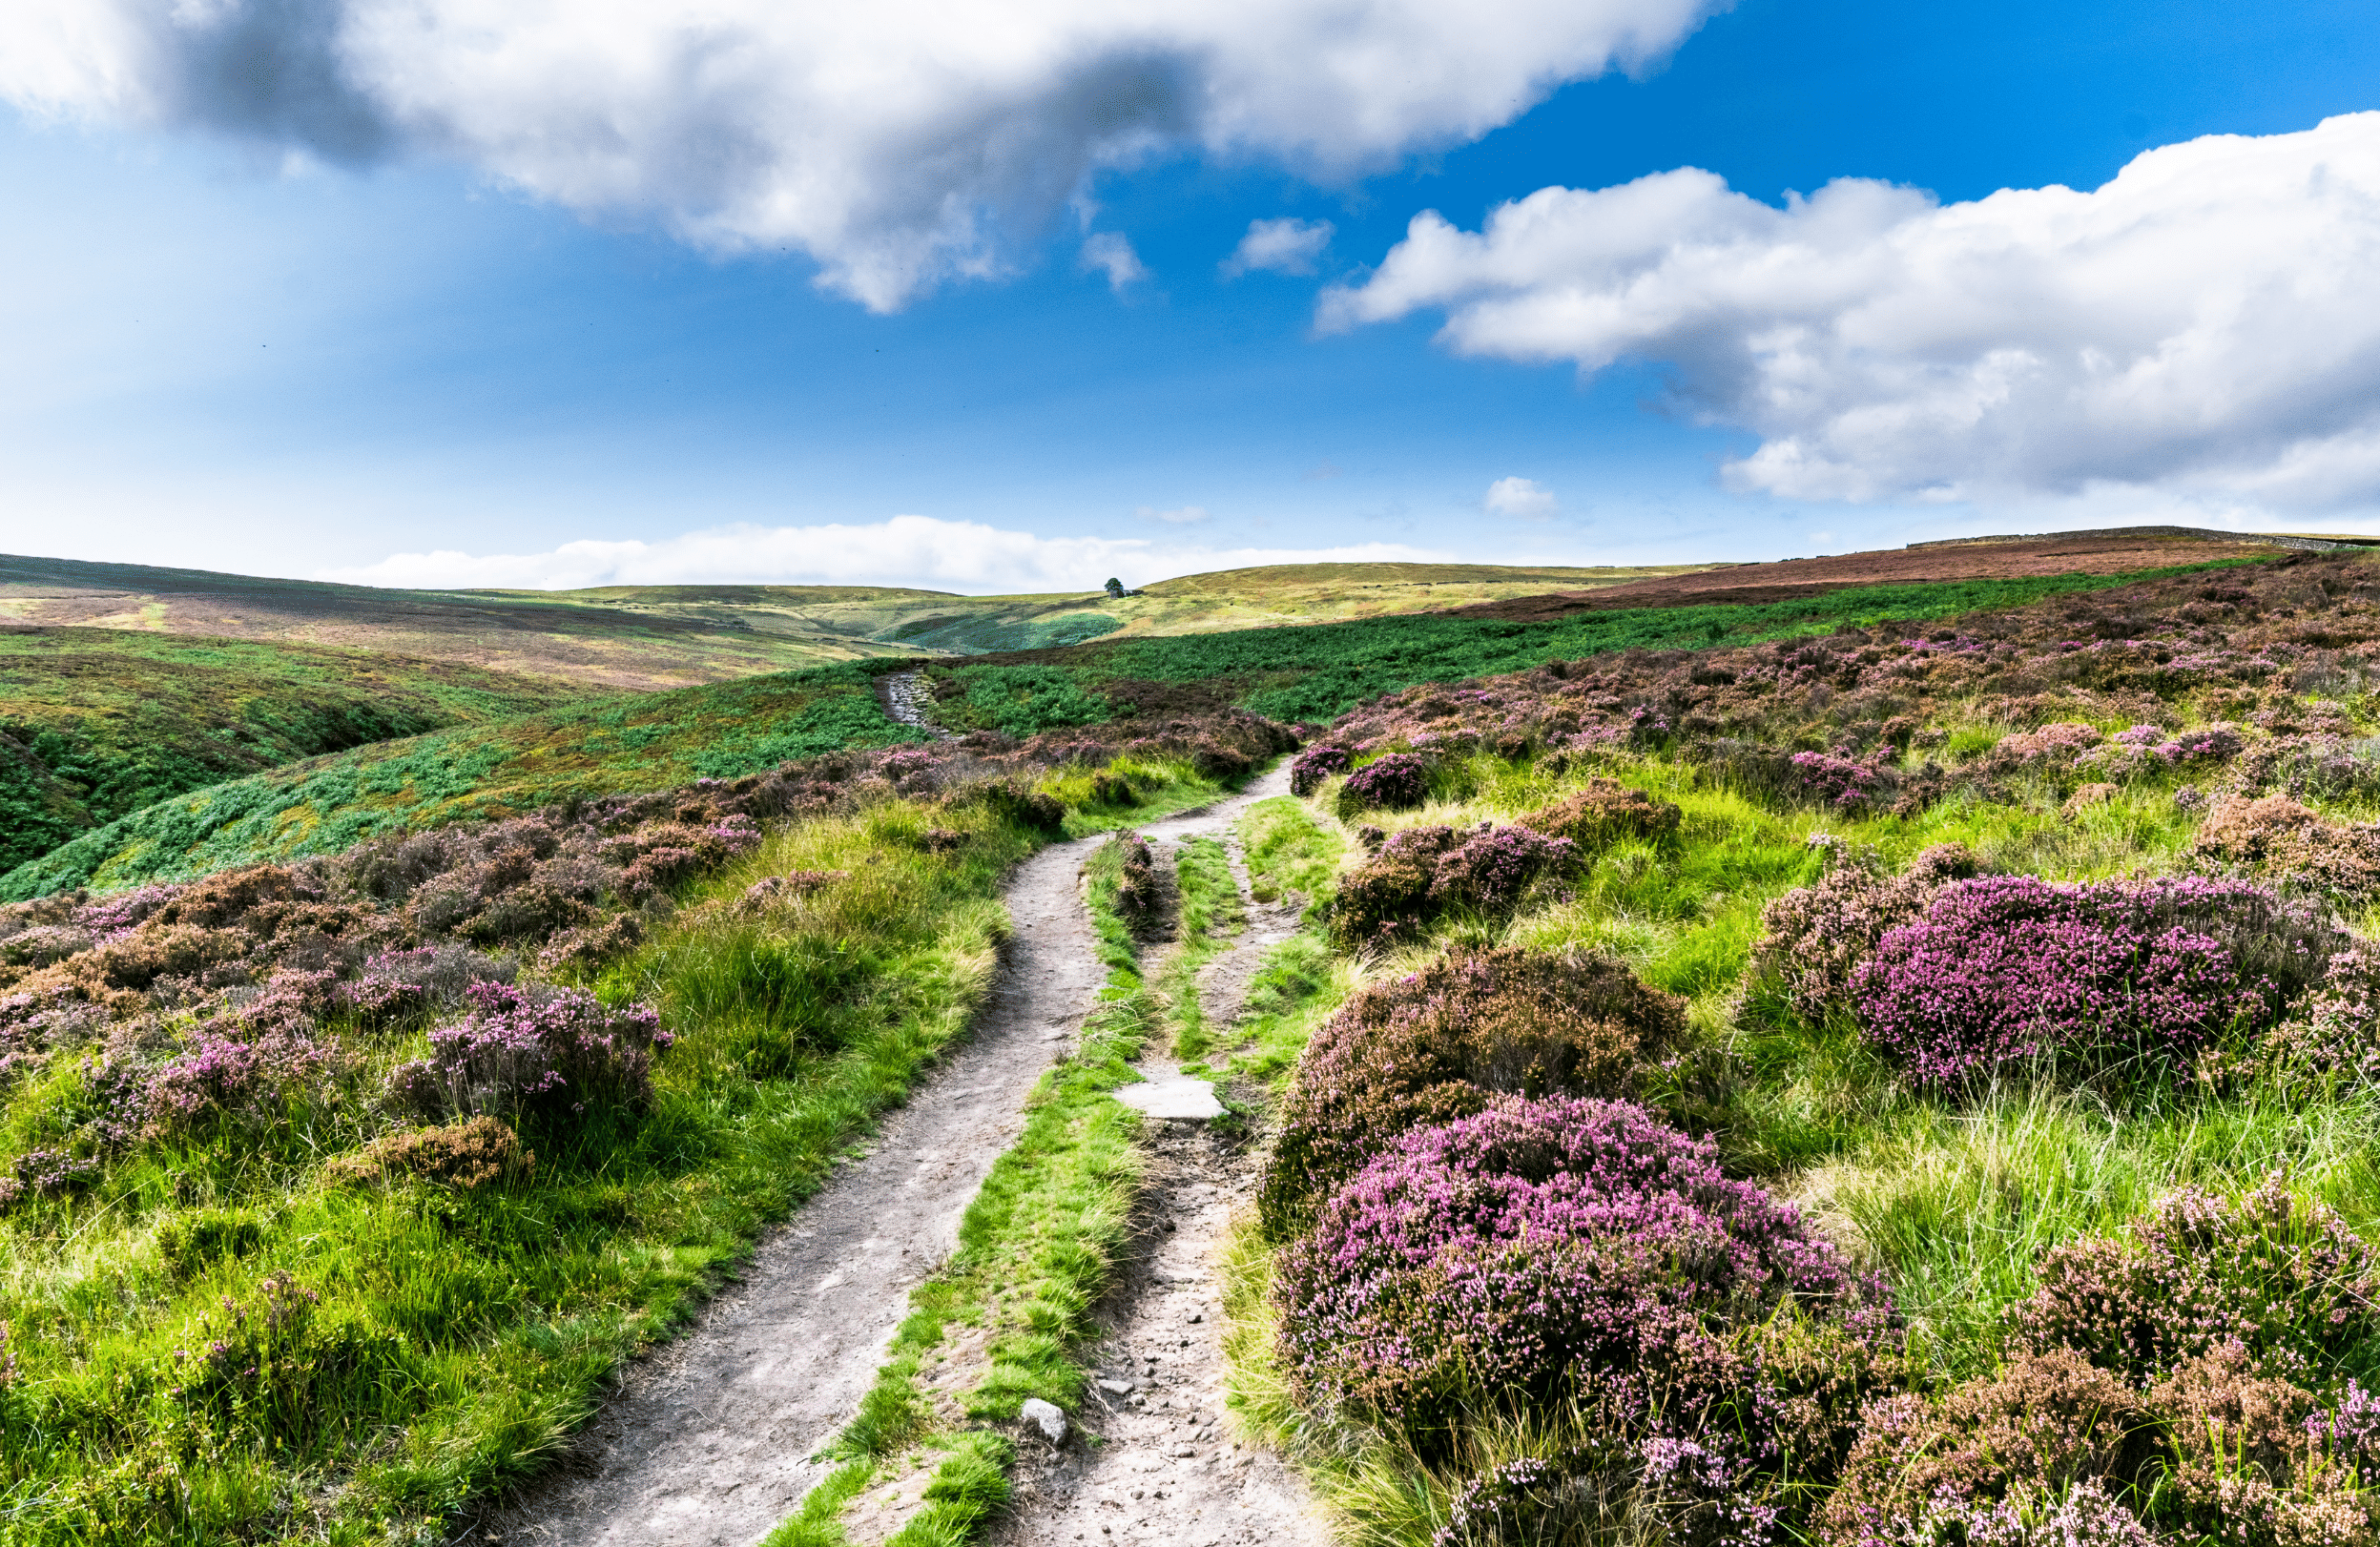 Uncover the Bronte Sisters' Yorkshire with a Day Trip to Haworth